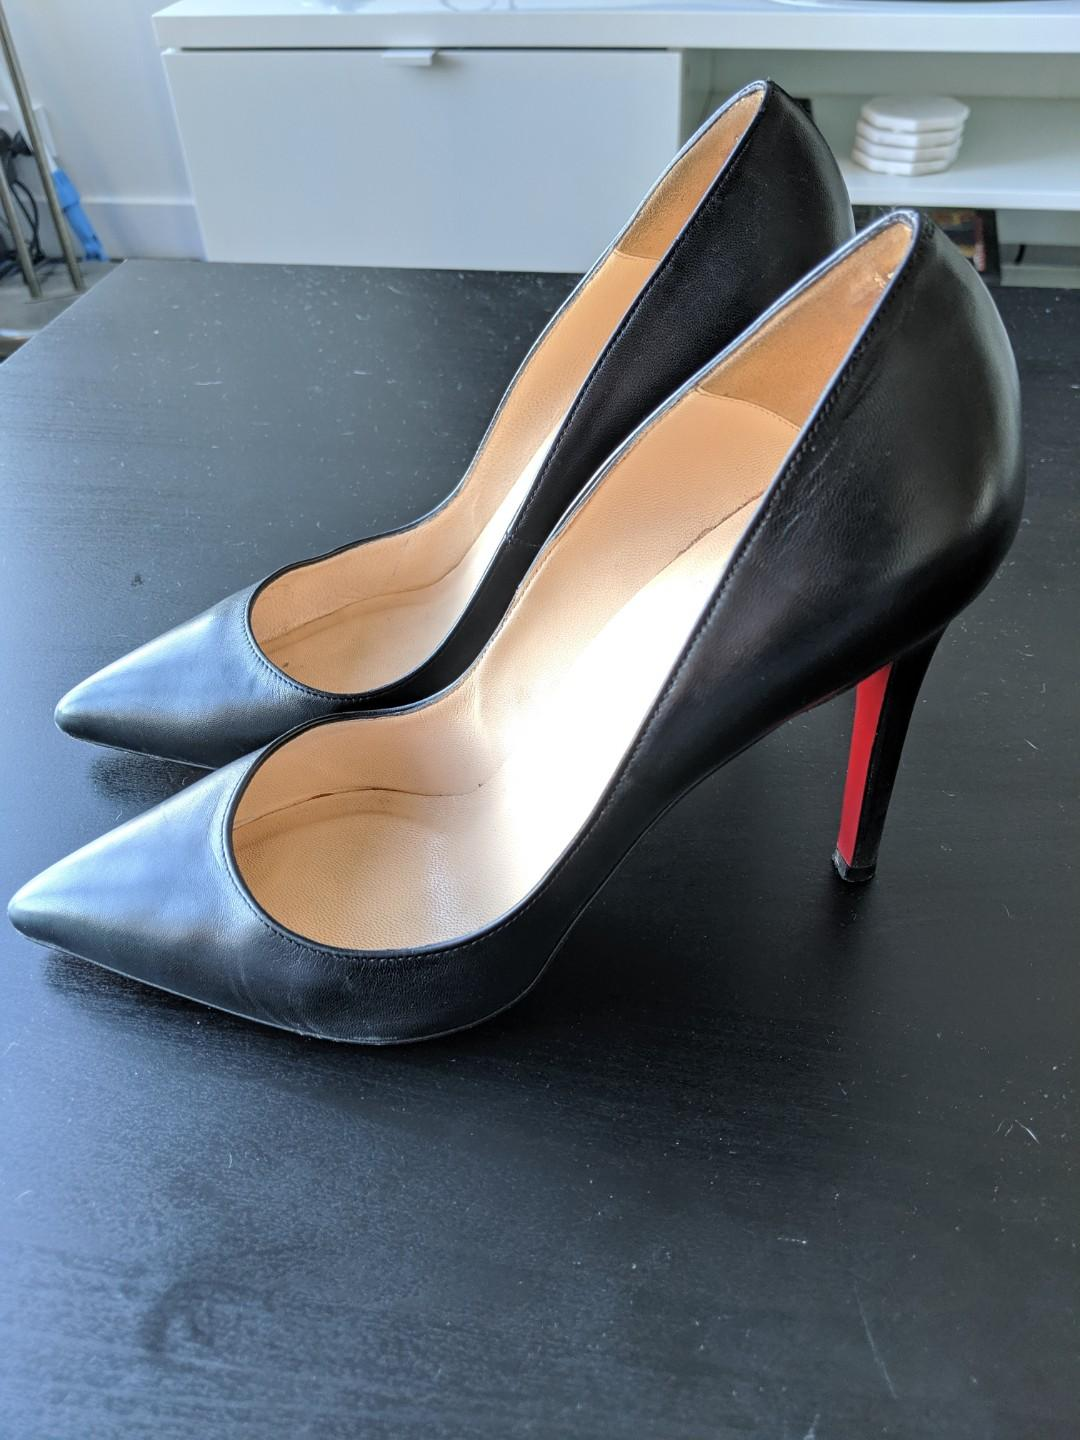 URGENT SALE NEEDED! AUTHENTIC Christian Louboutin Pigalle 100 Black Leather size 38 + dust bag